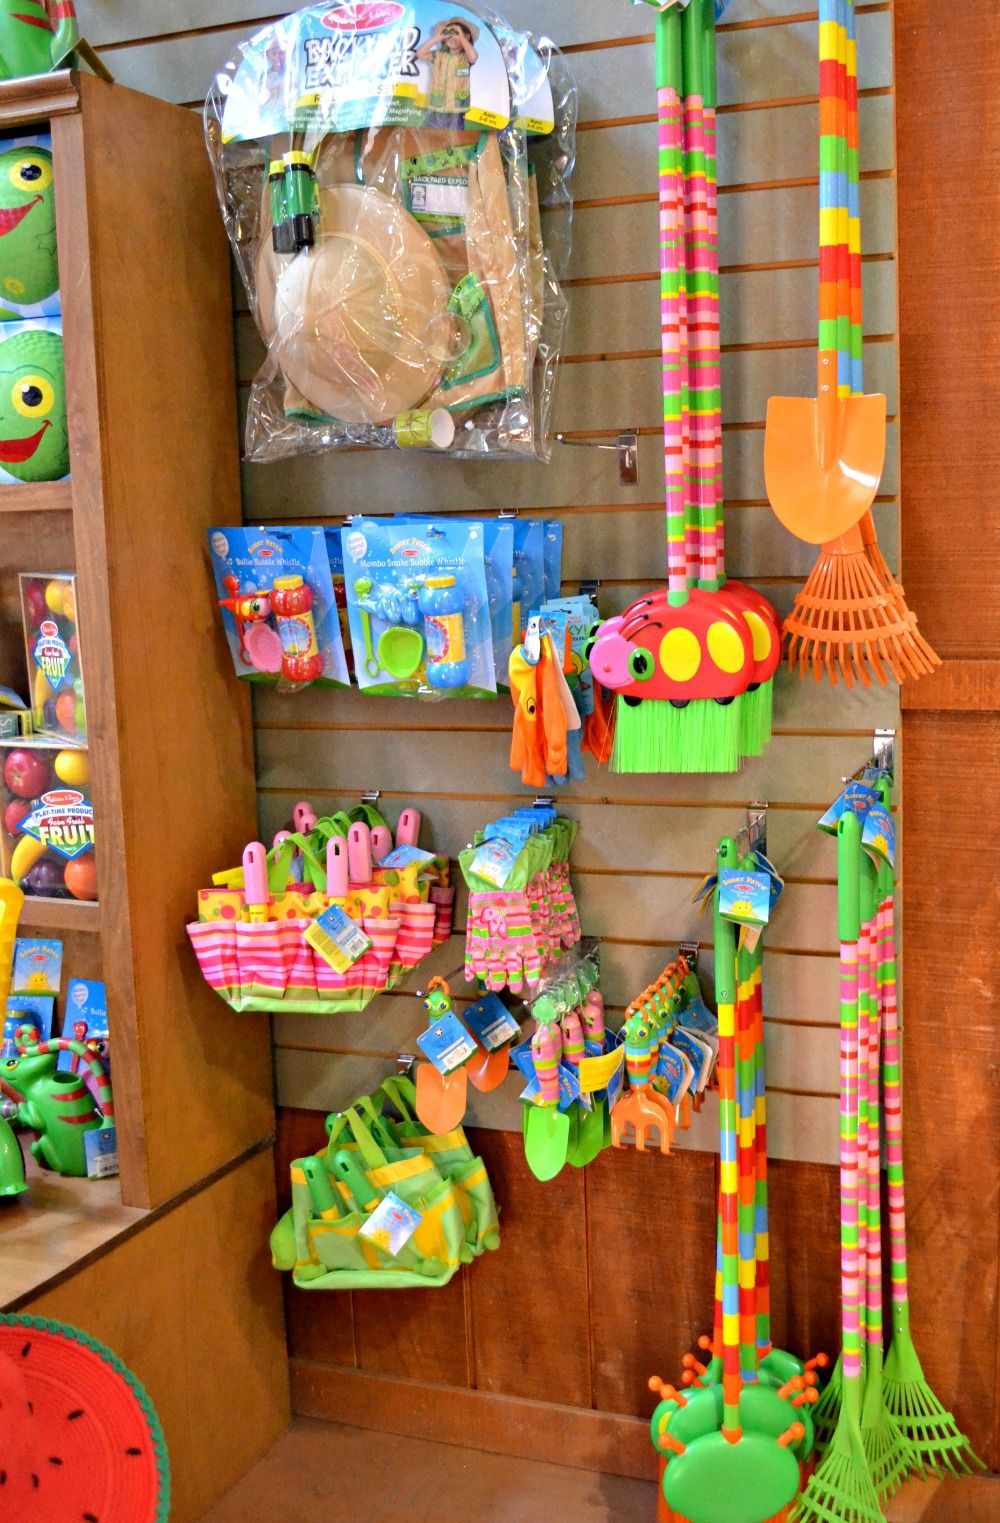 Kids Gardening Tools, Melissa And Doug I Fairview Garden Center I Raleigh,  NC I